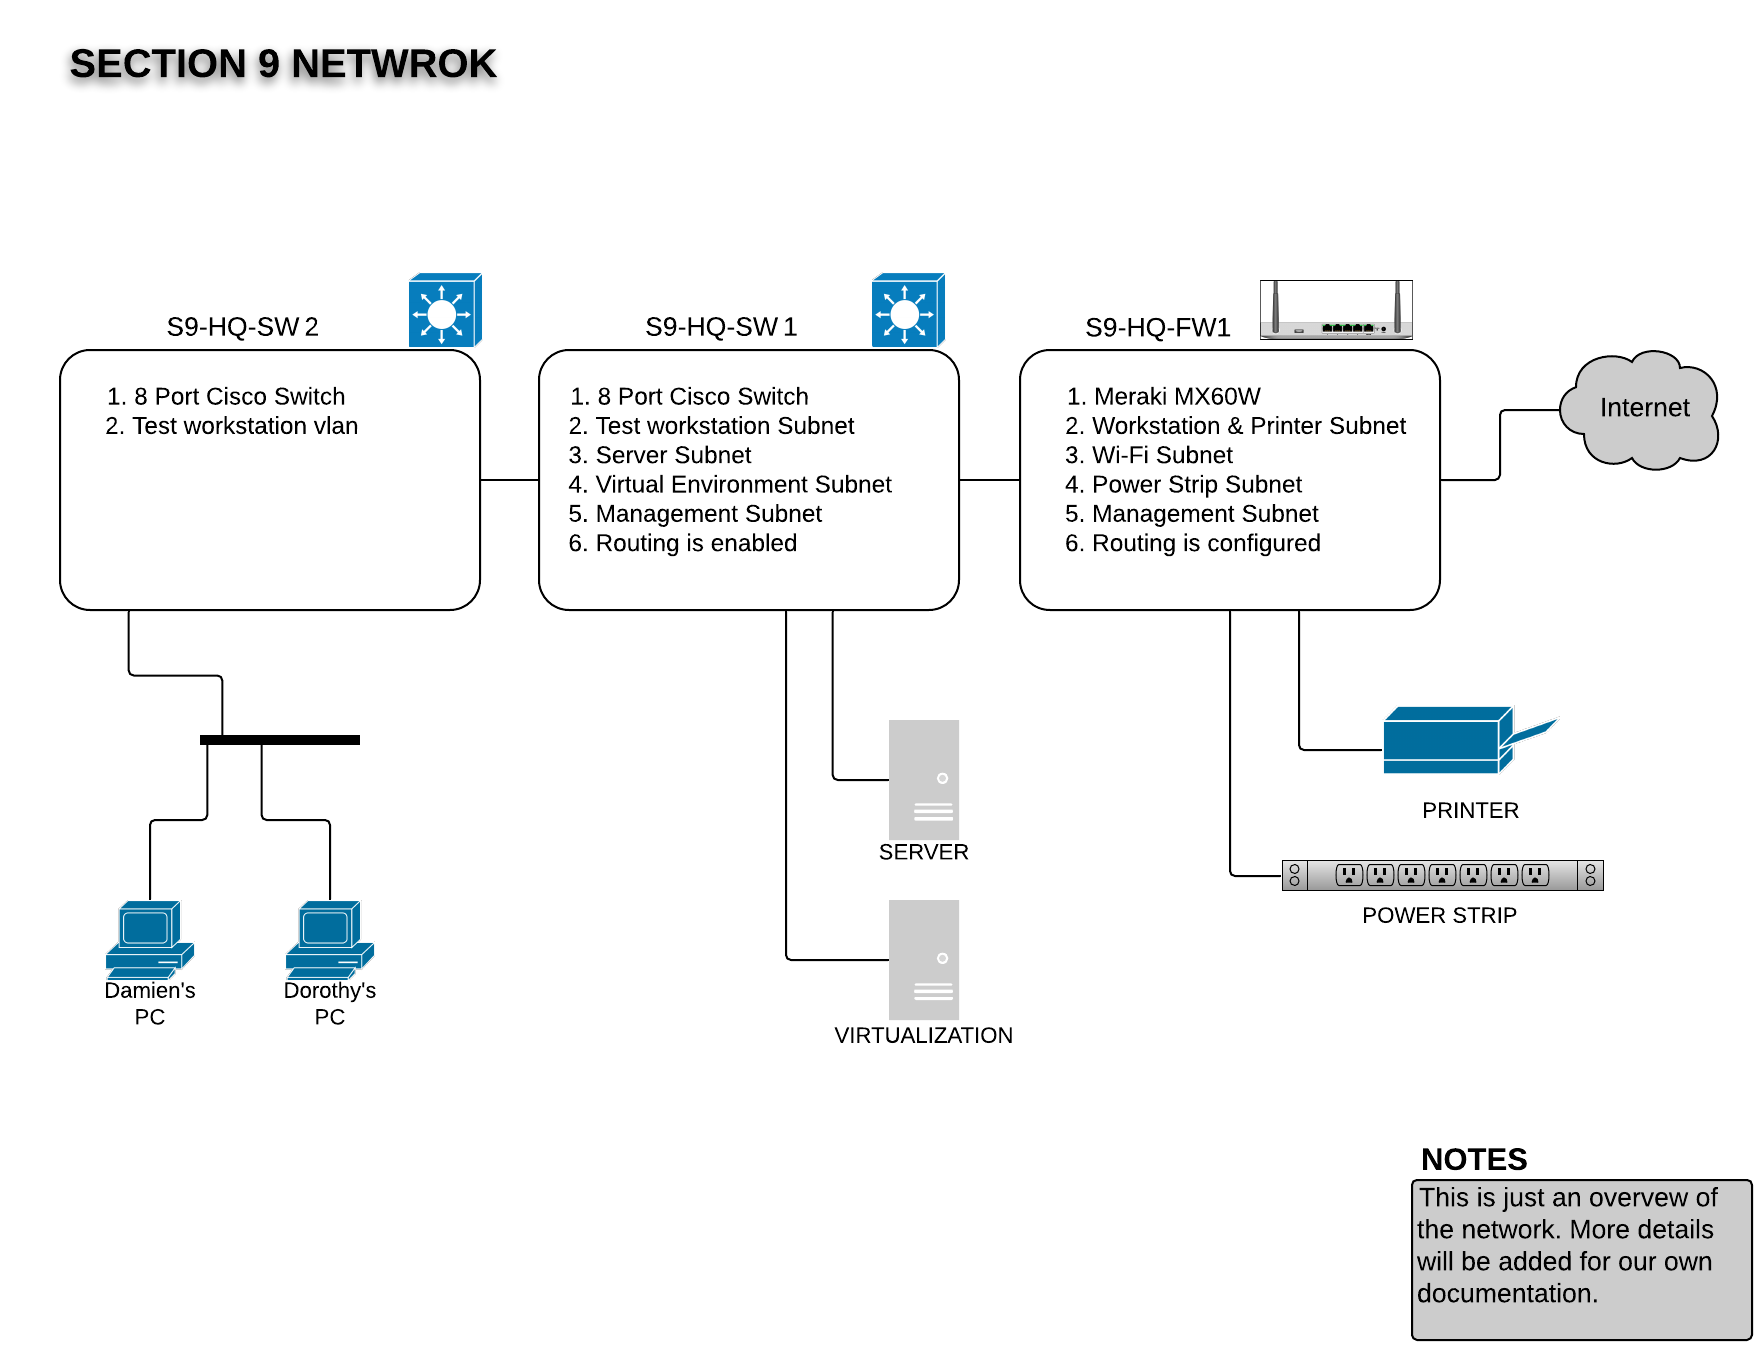 Network Diagram 4-20-19.png